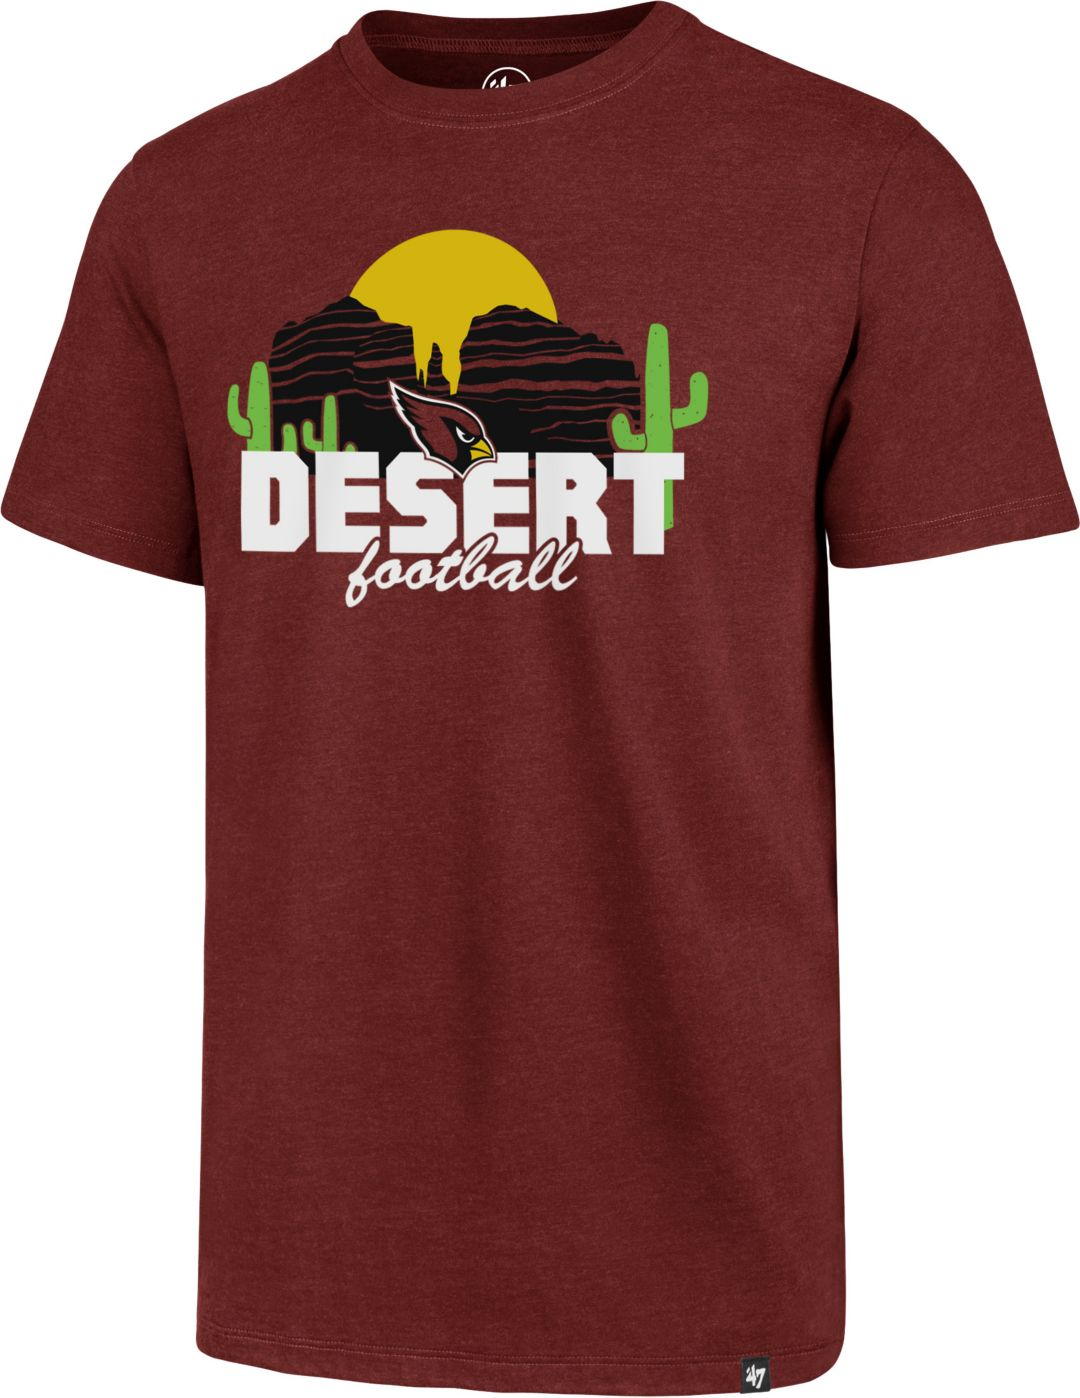 19fdb407 '47 Men's Arizona Cardinals Desert Football Red T-Shirt